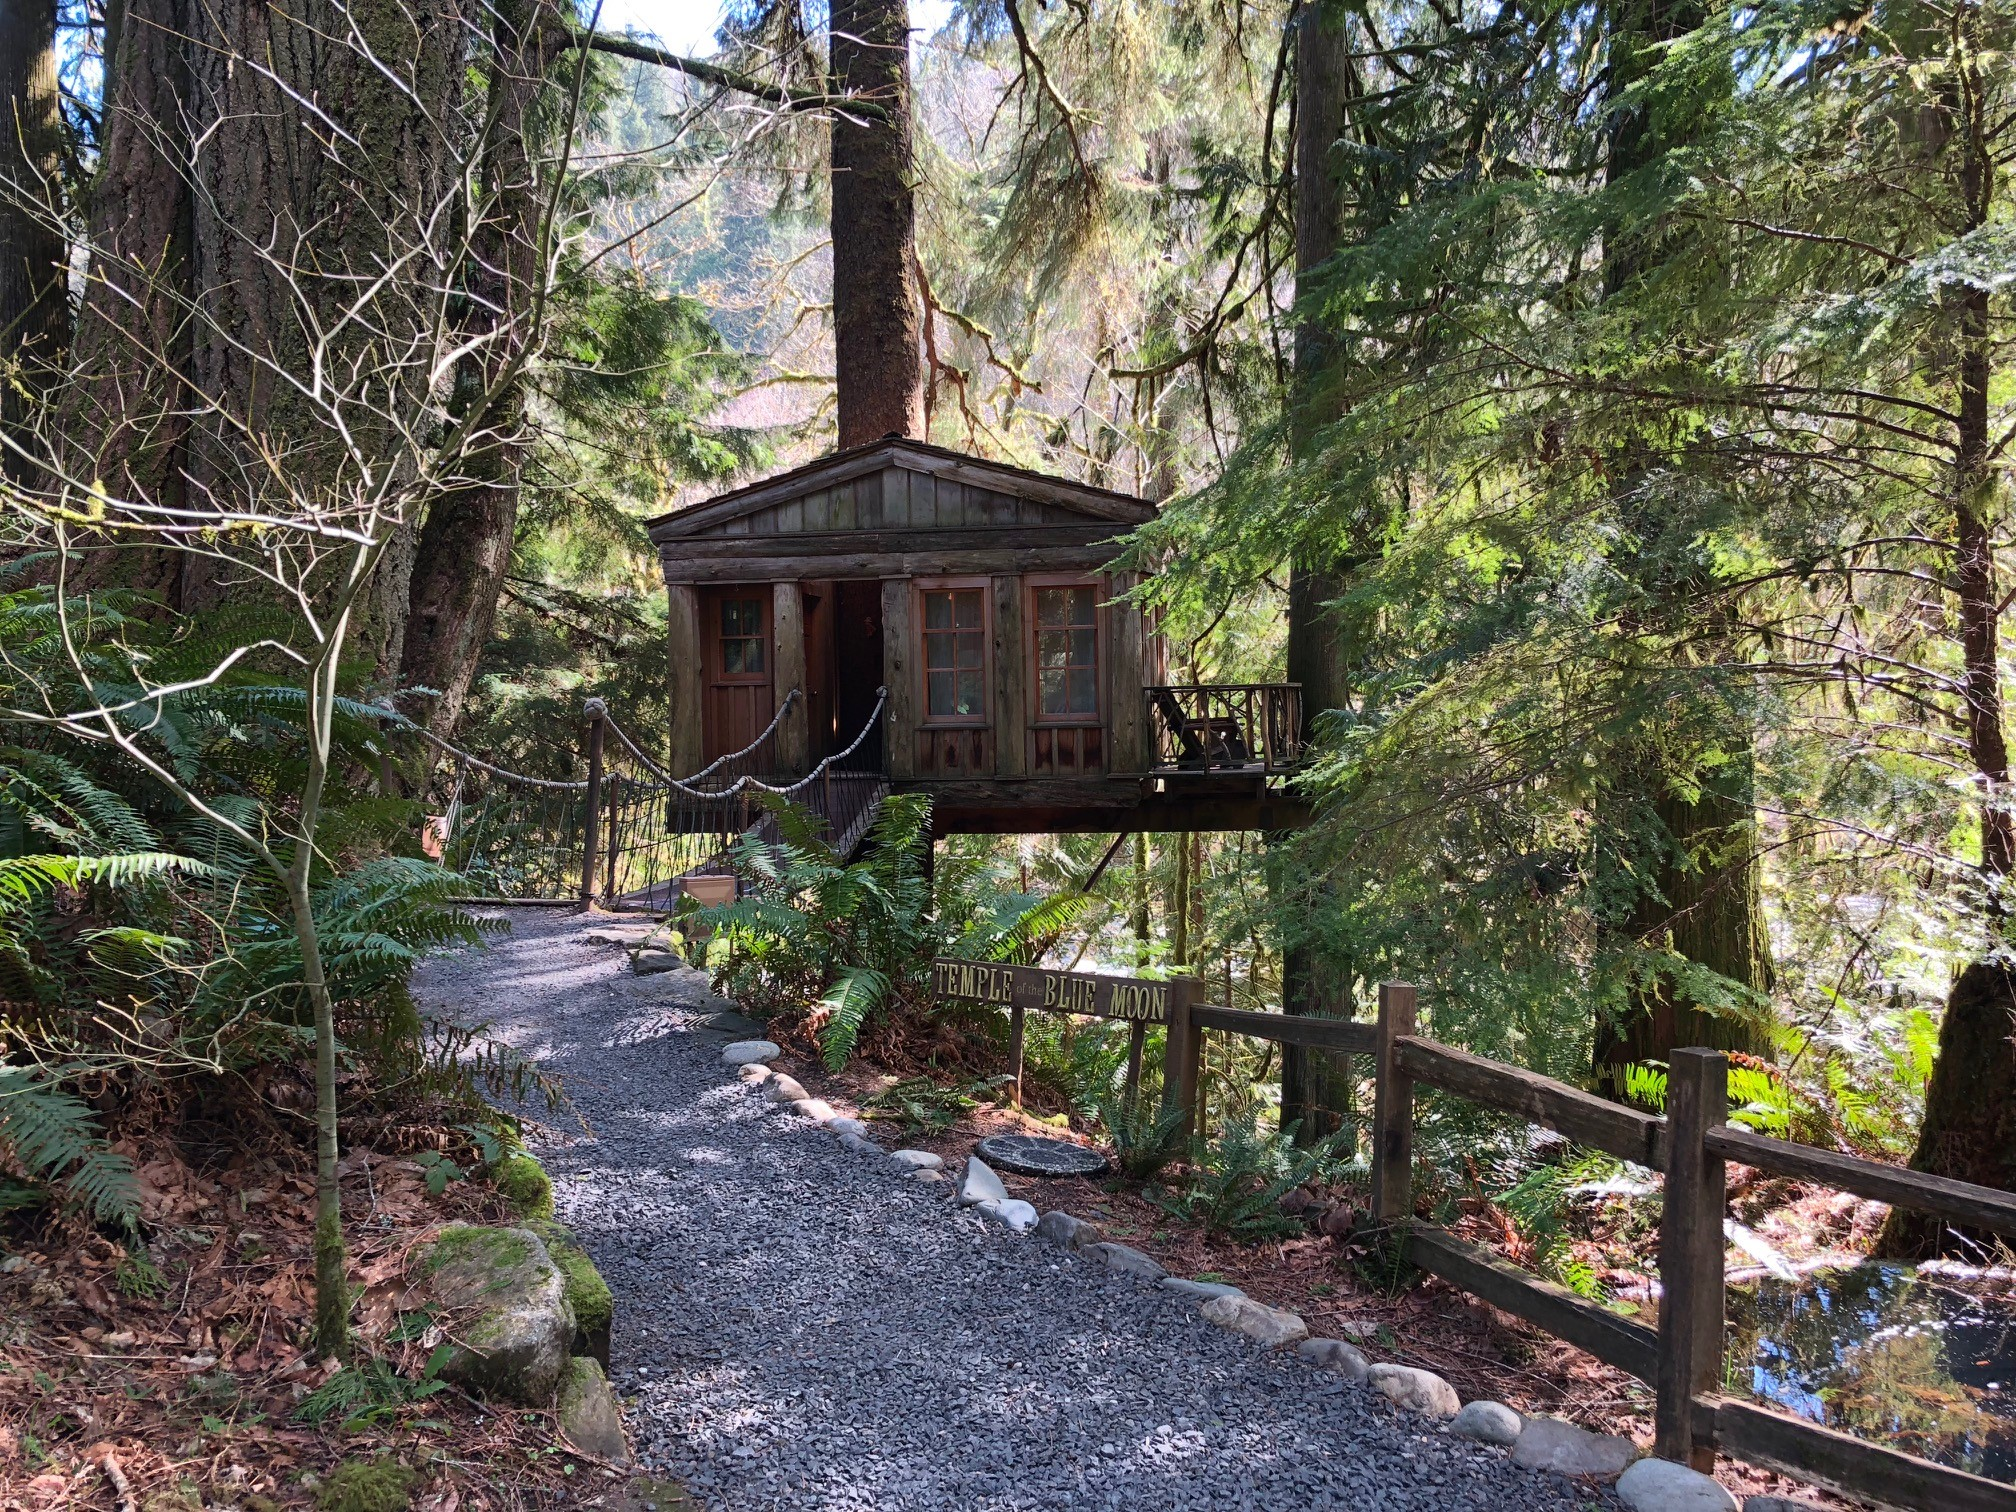 Pete Nelson, Master Treehouse Builder and star of the TV show Treehouse Masters has created special spots for people among the trees at Treehouse Point, 25 miles east of Seattle. (Photo Credit Seattle Refined)